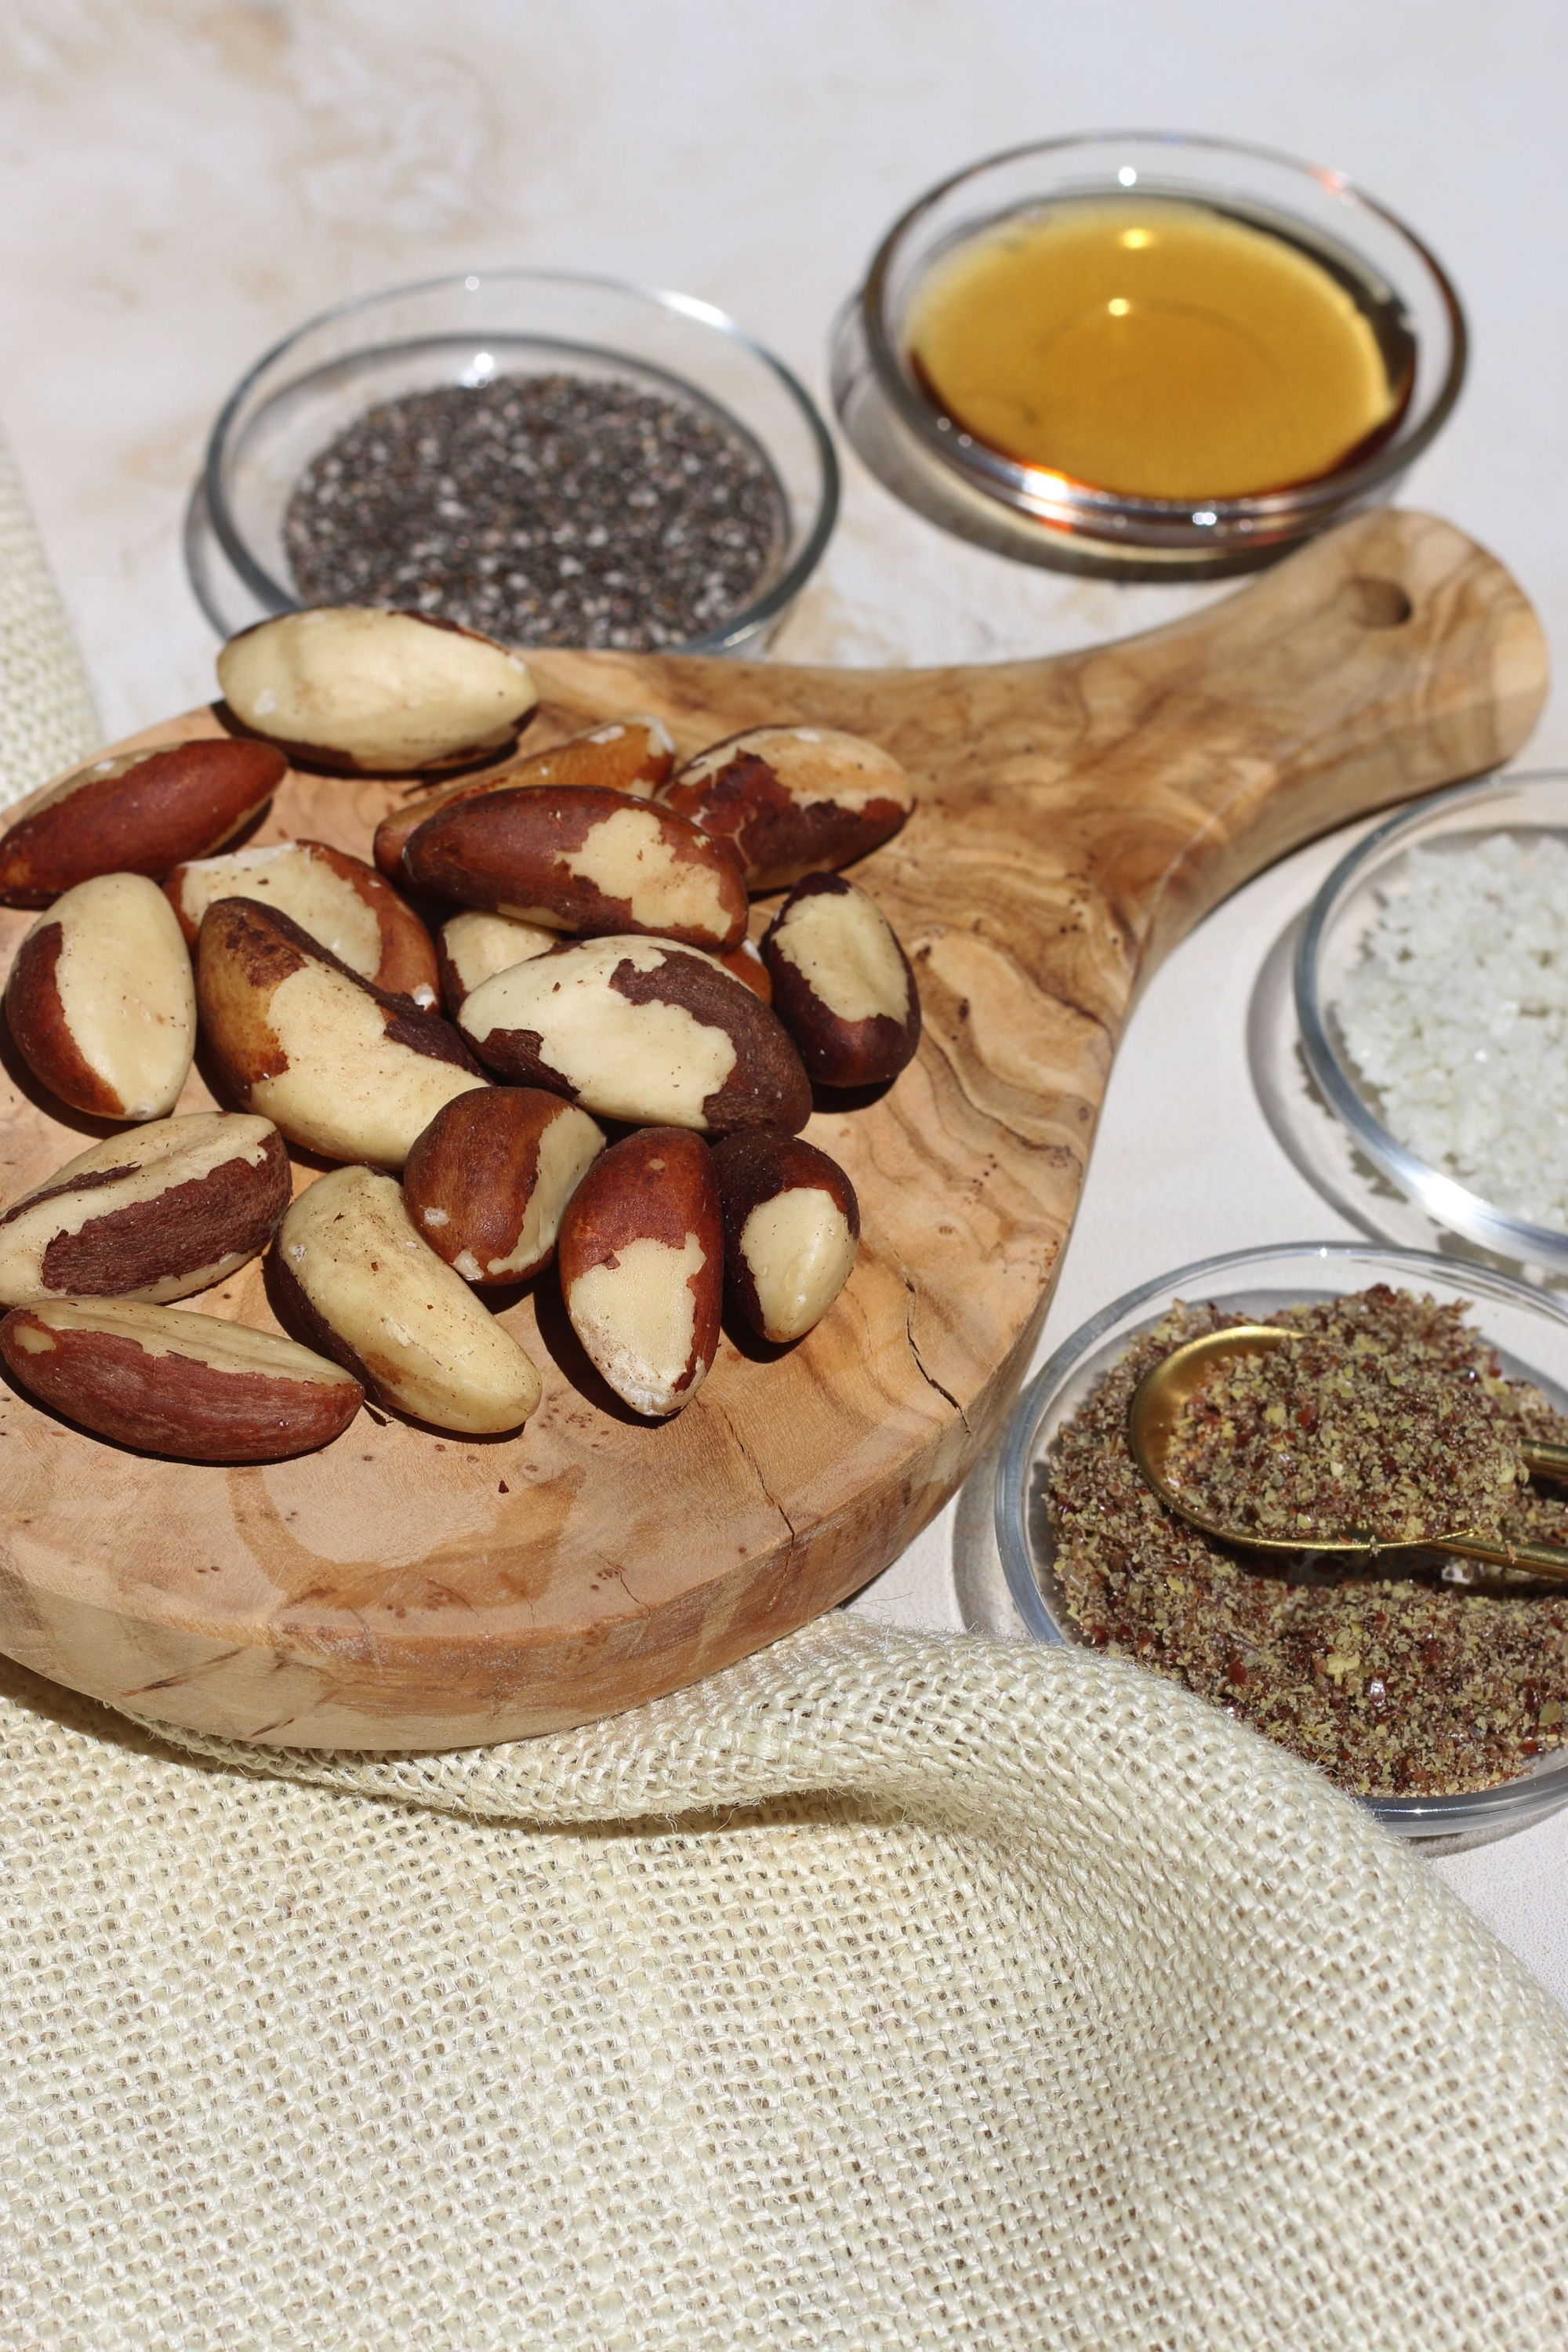 Ingredients for brazil nut butter